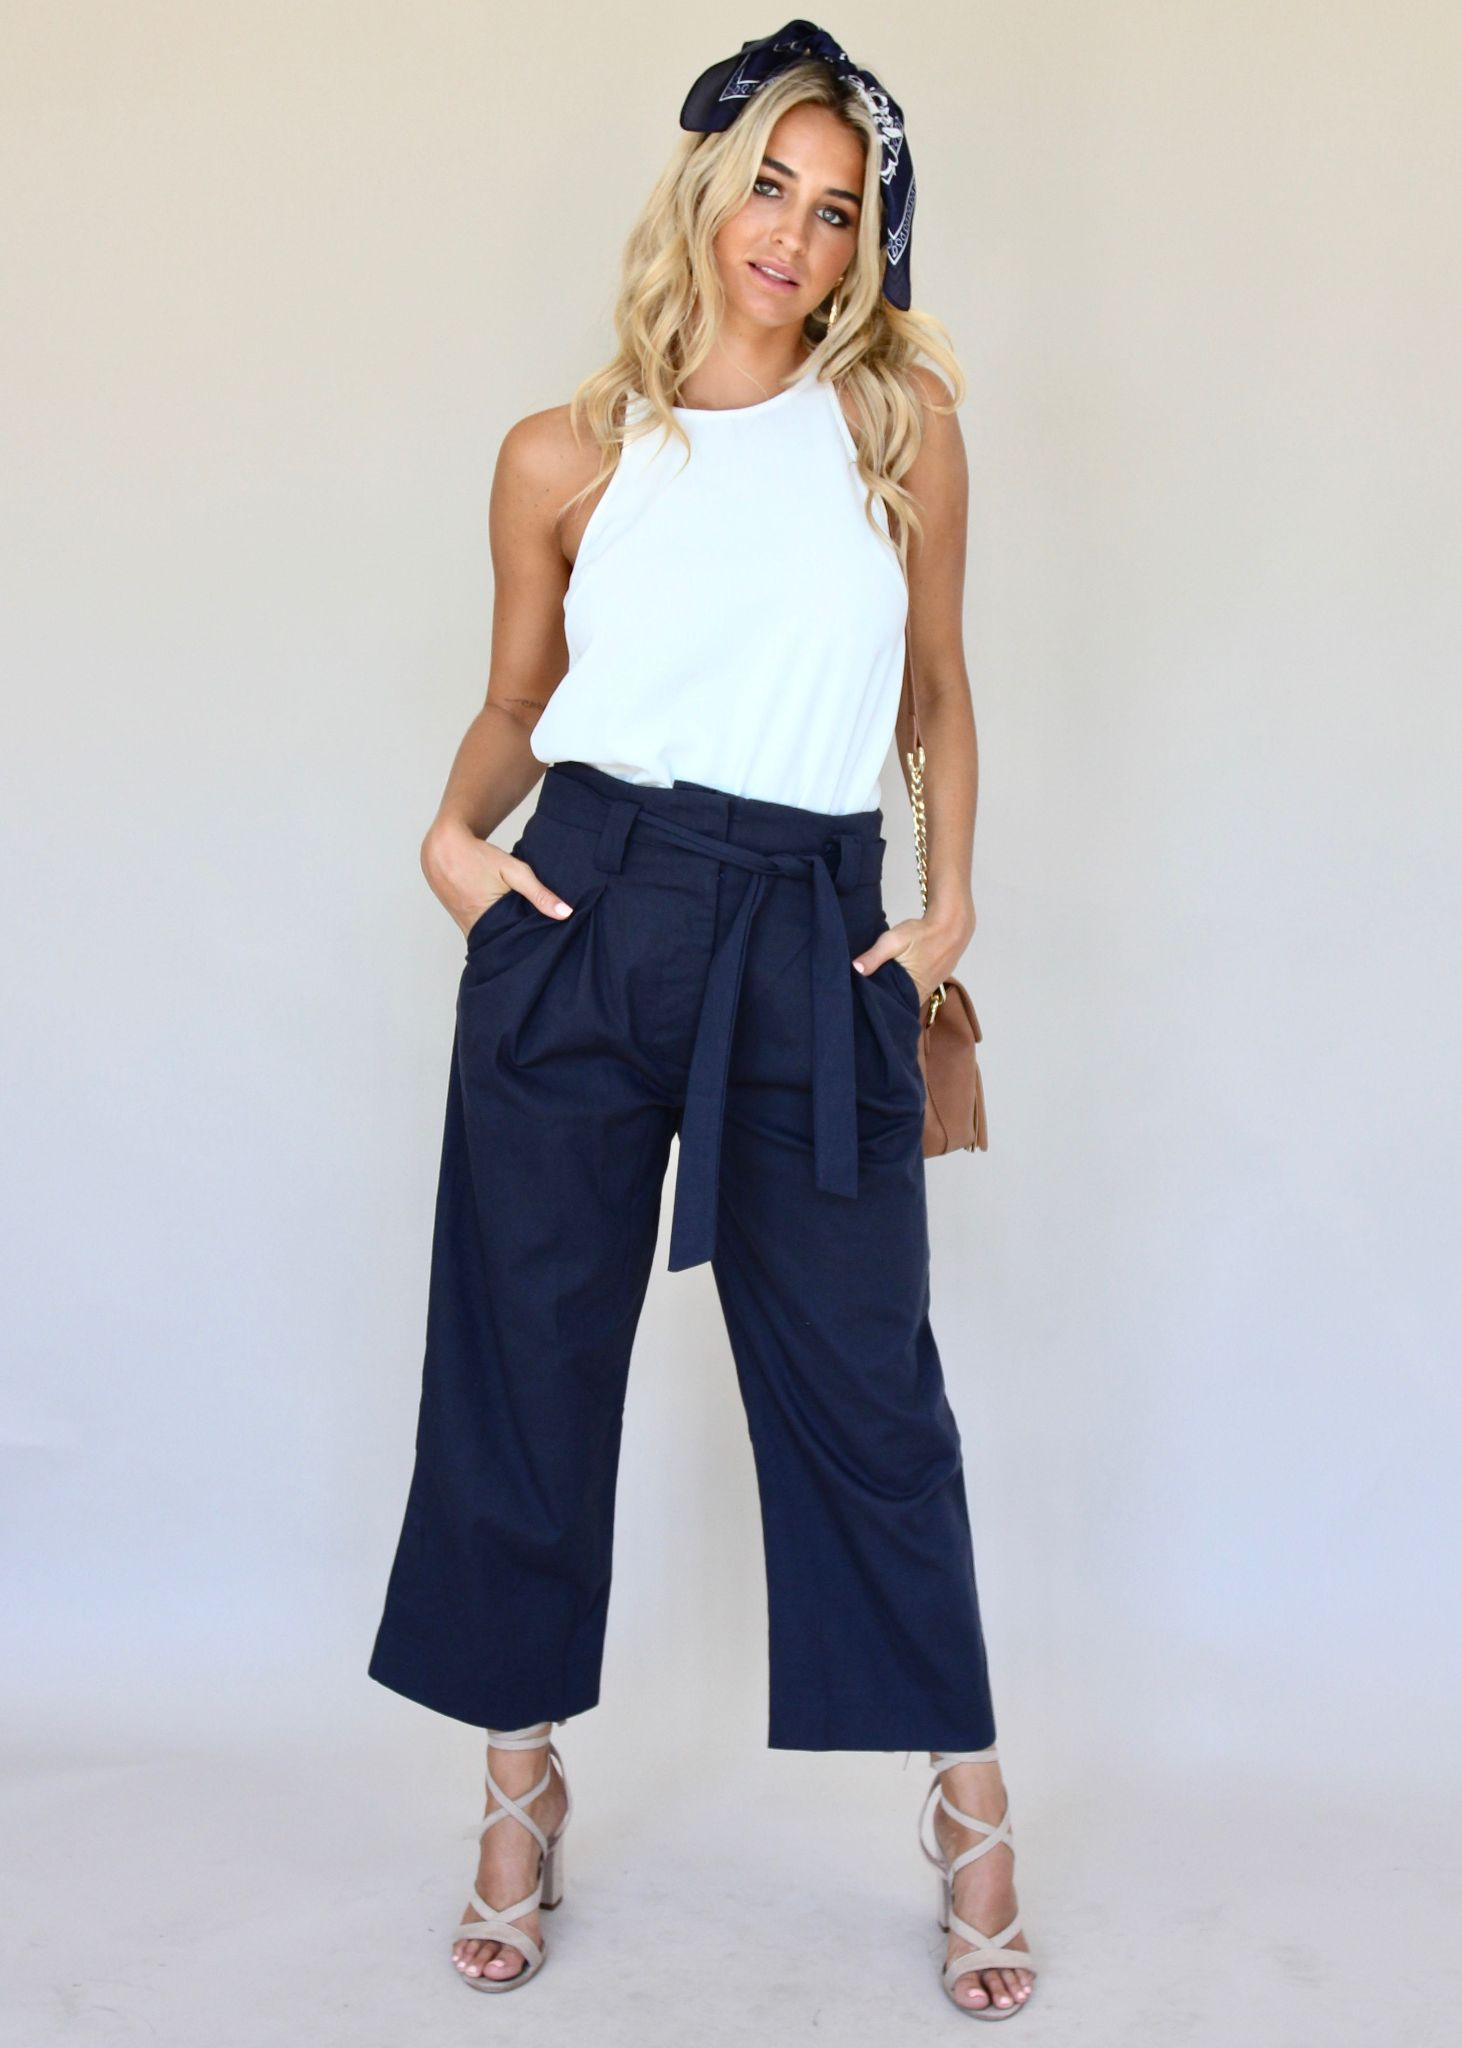 Lady of Manor Pants - Navy